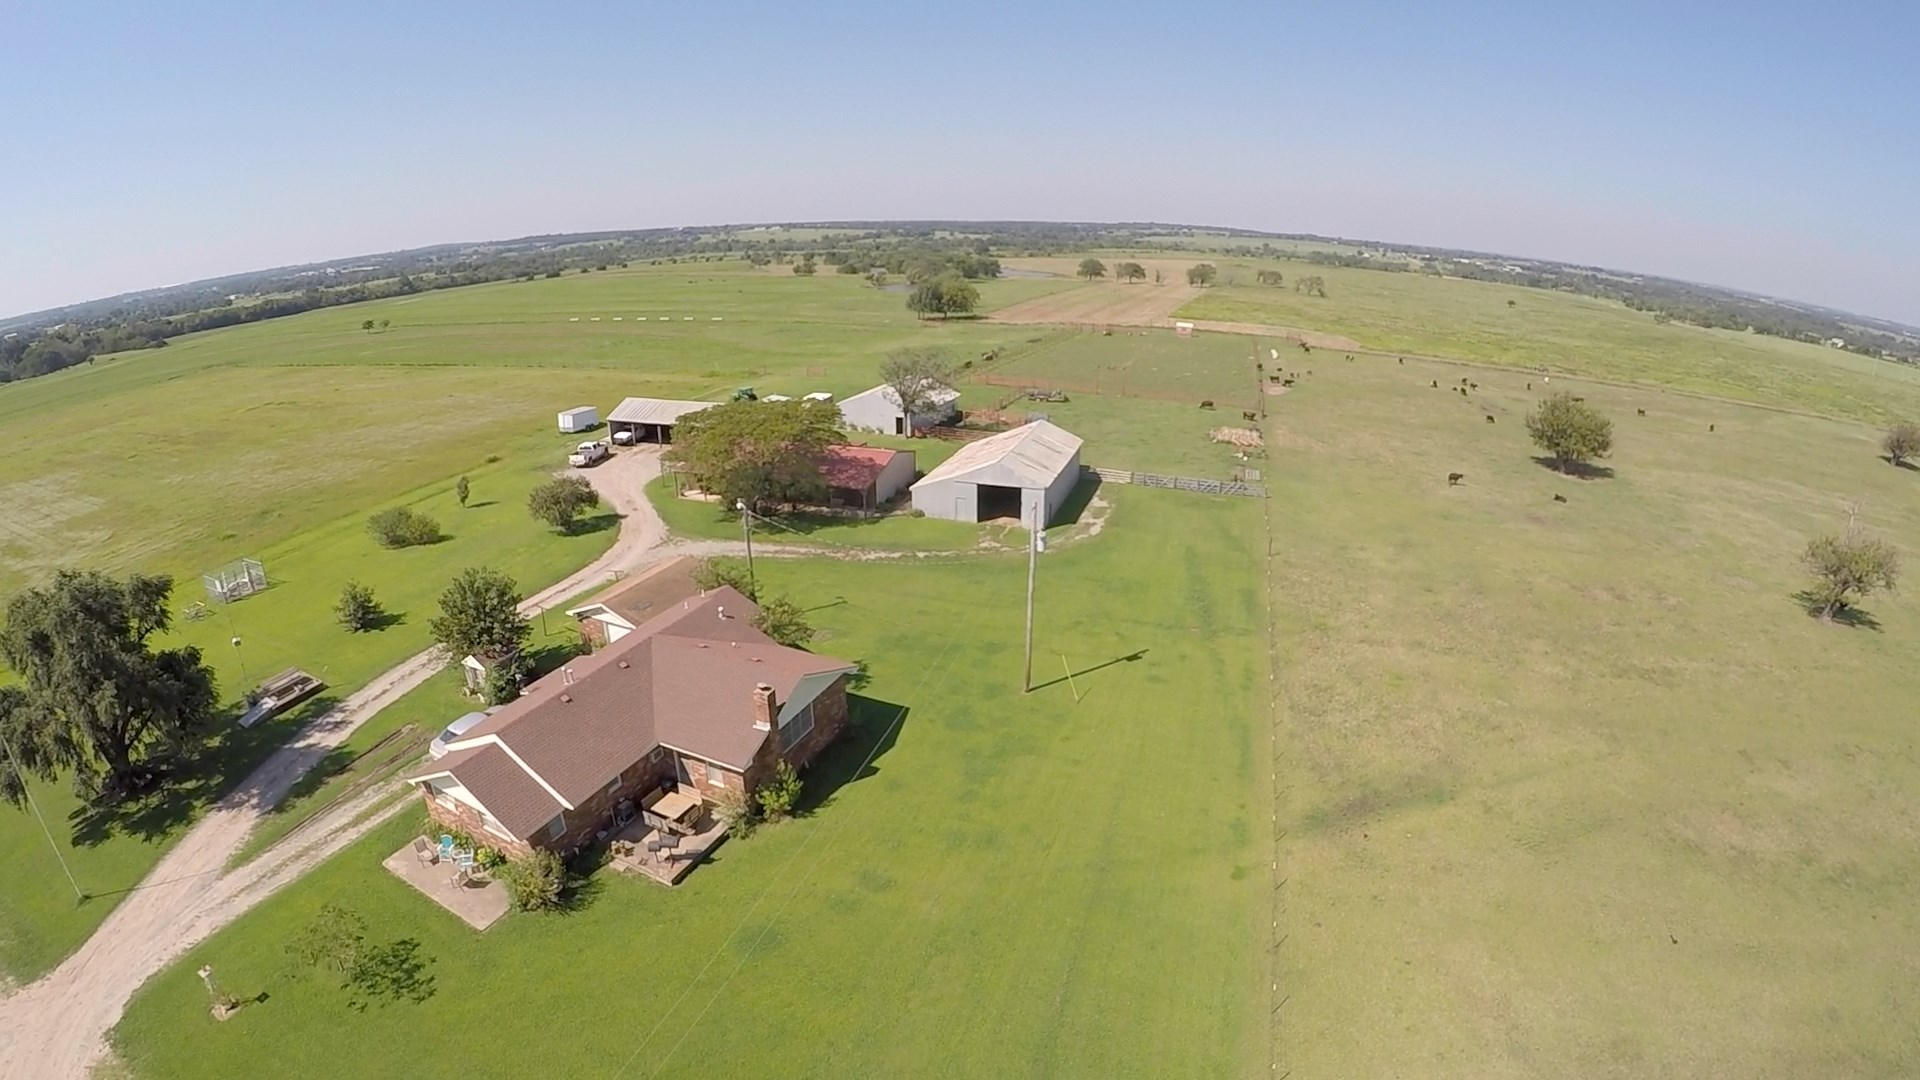 No Reserve Auction, Cushing OK, Home on 159 Ac +/- Sat, Oct 12 @ 12:30